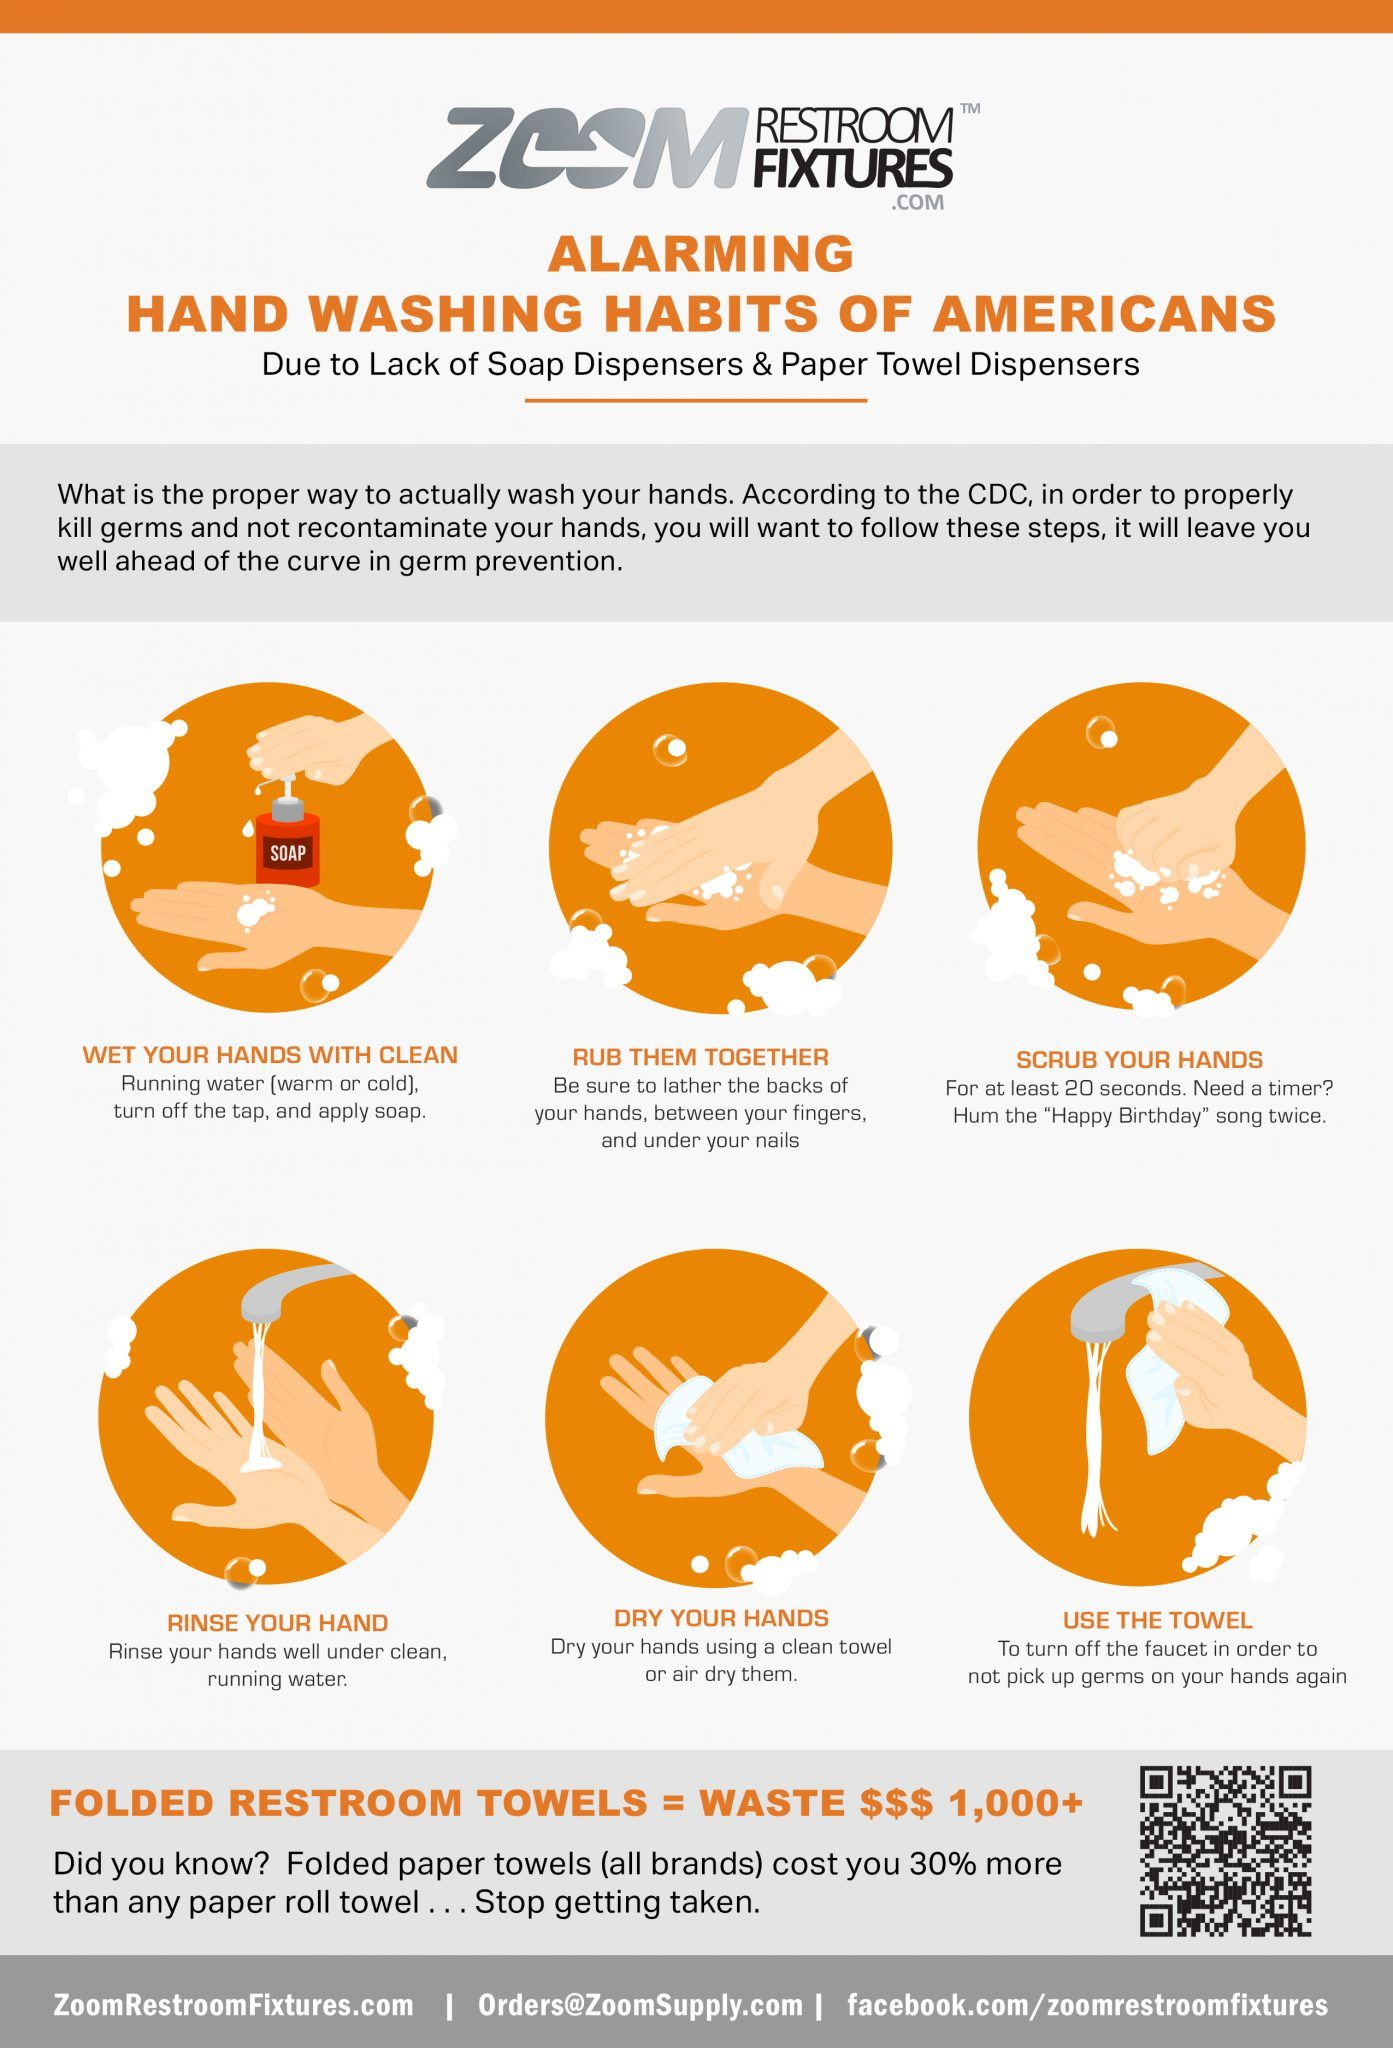 Alarming Hand Washing Habits Infographic